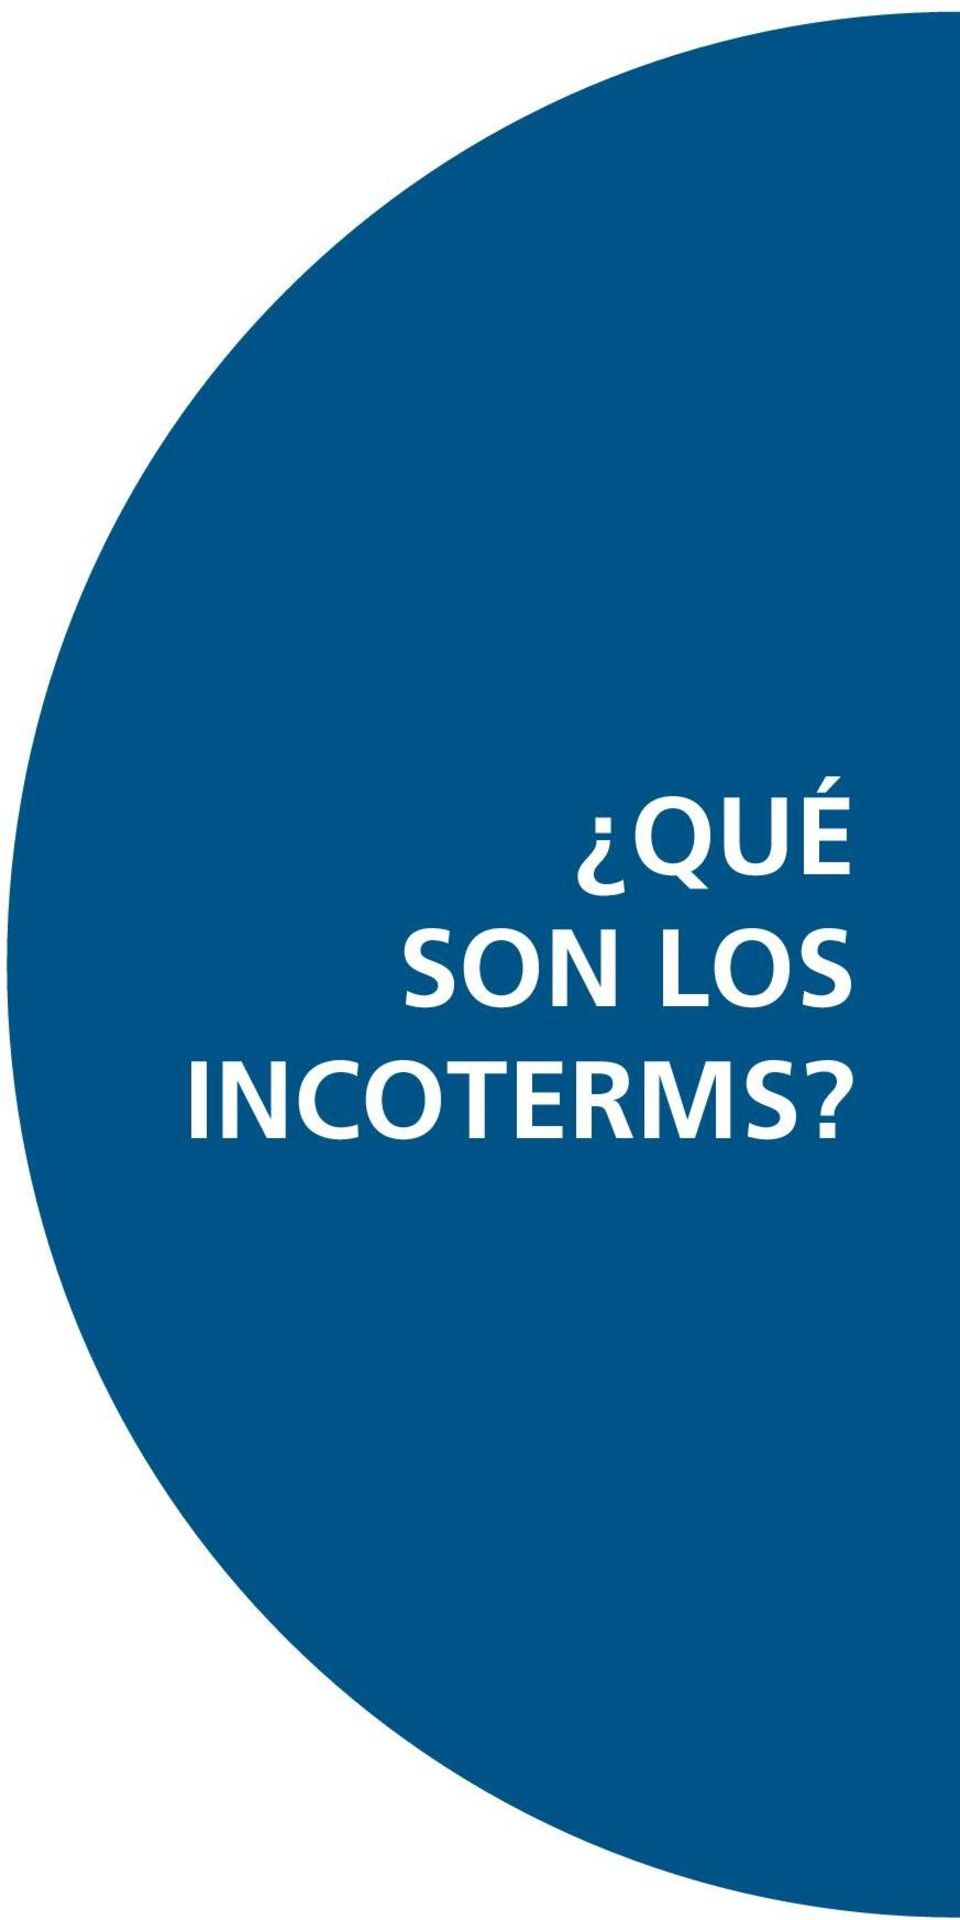 incoterms?